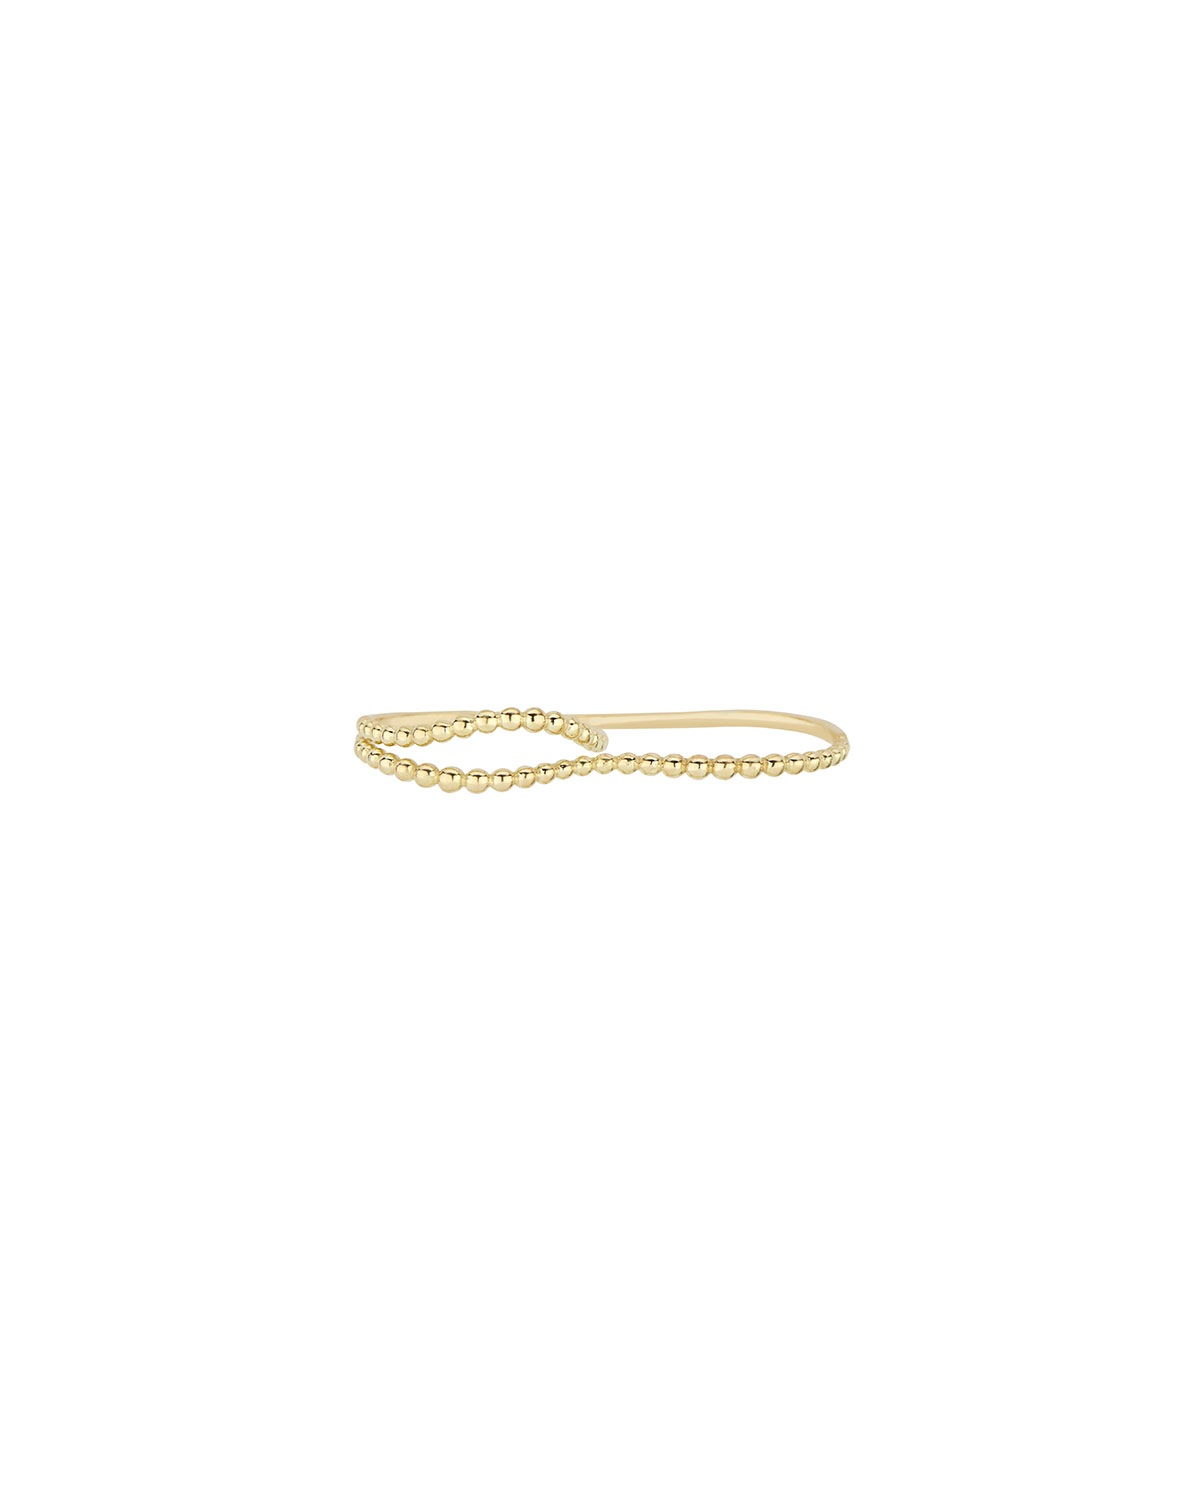 Granulated Ball Wave Two-Finger Ring